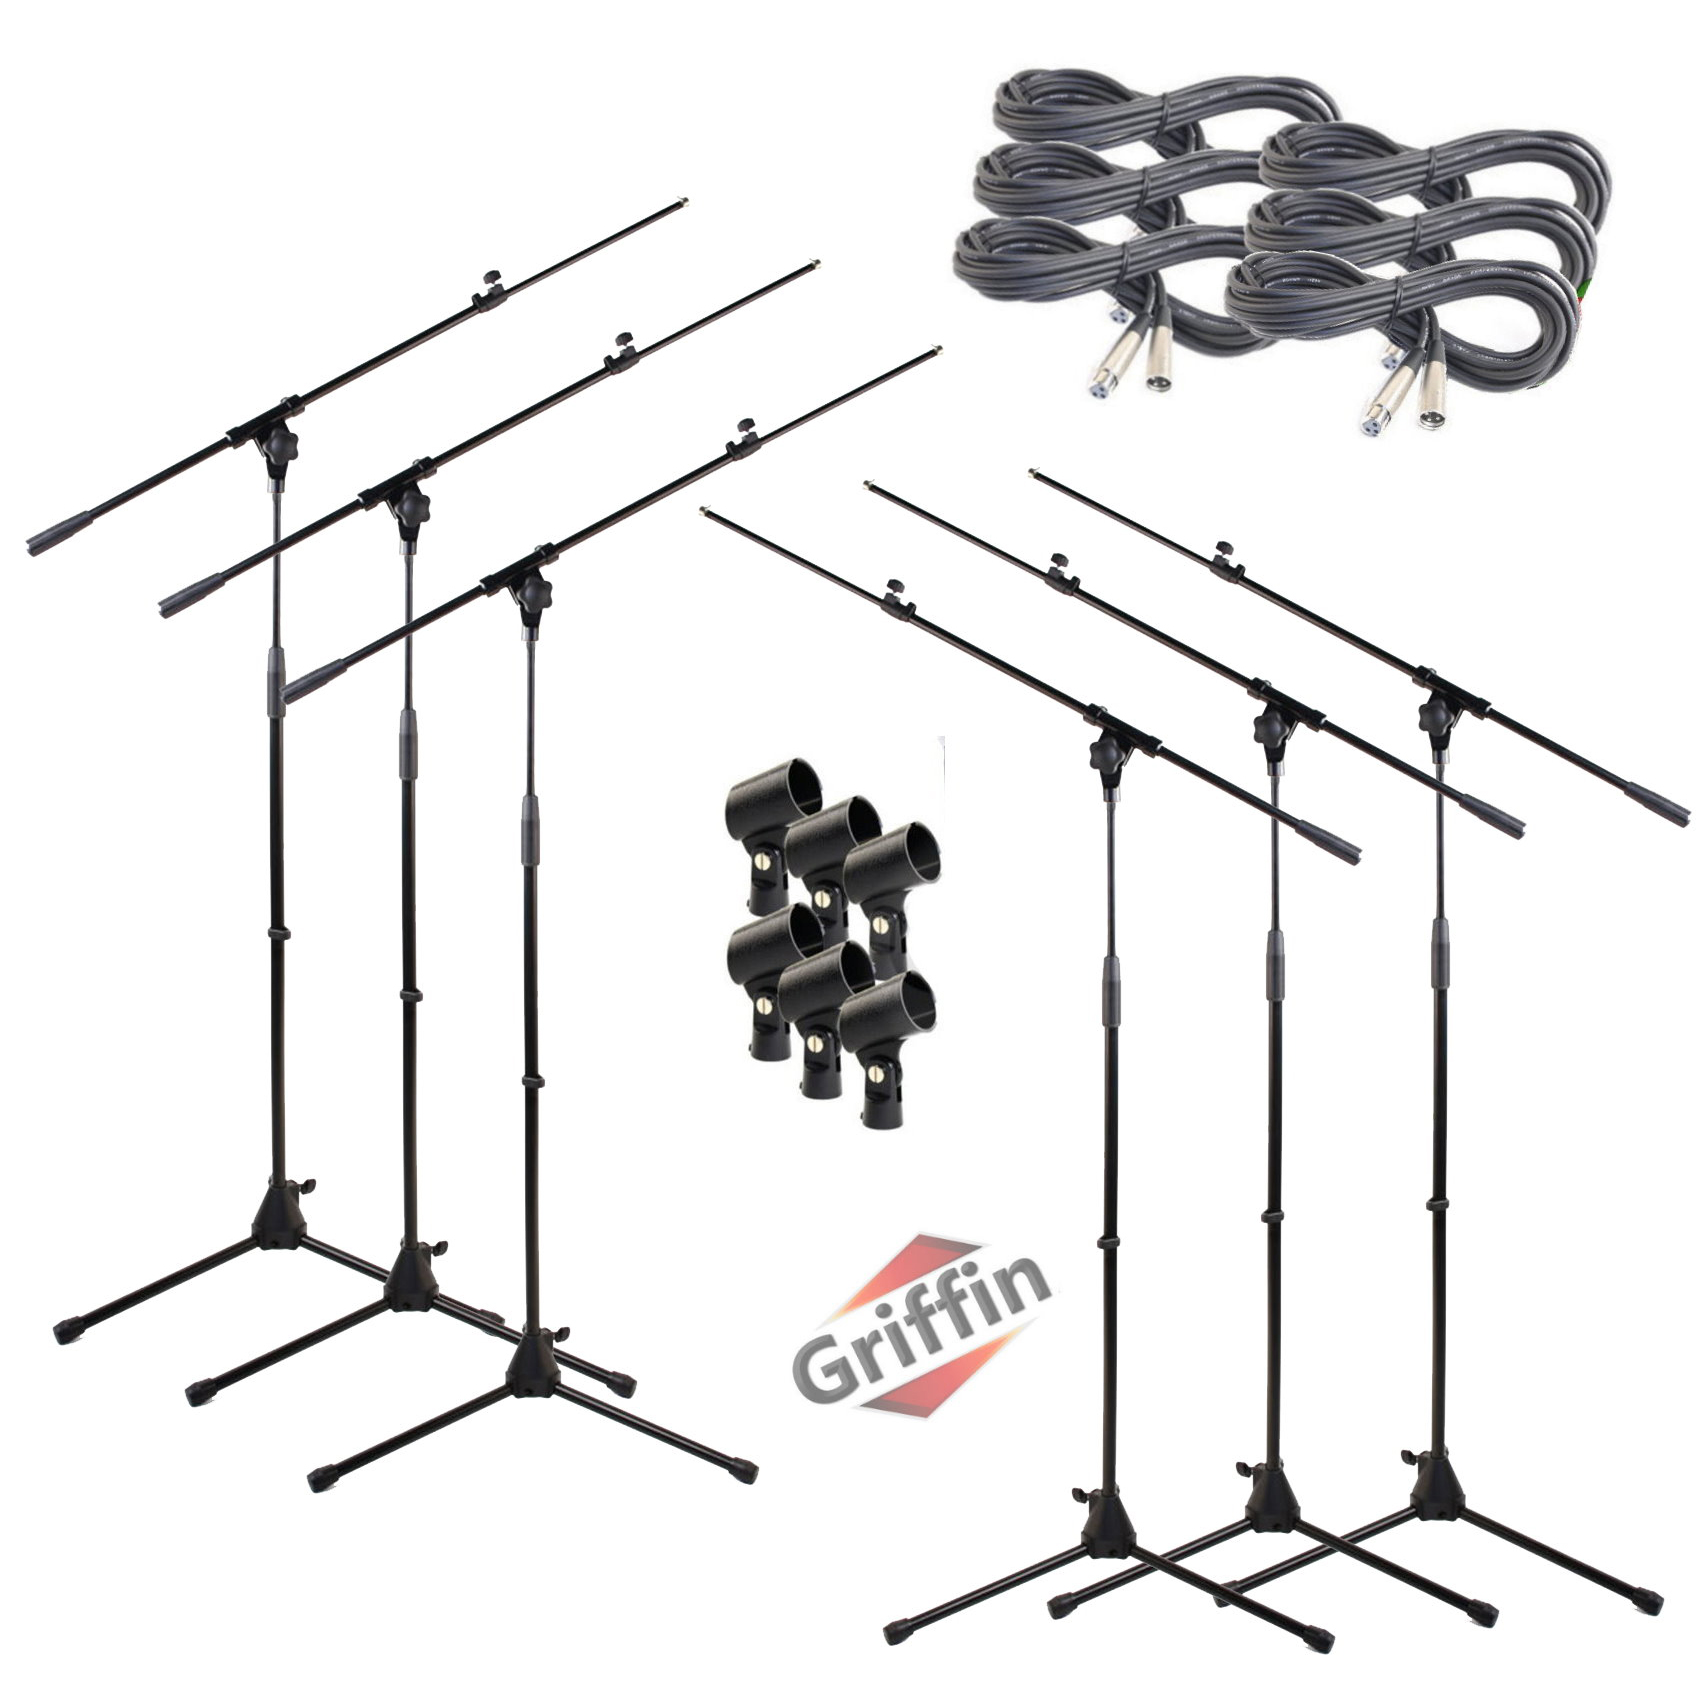 Hand-Held Dynamic Vocal Microphones Package with Mic Boom Stands, XLR Cables, Carrying Bag & Clips 6 PACK by Griffin